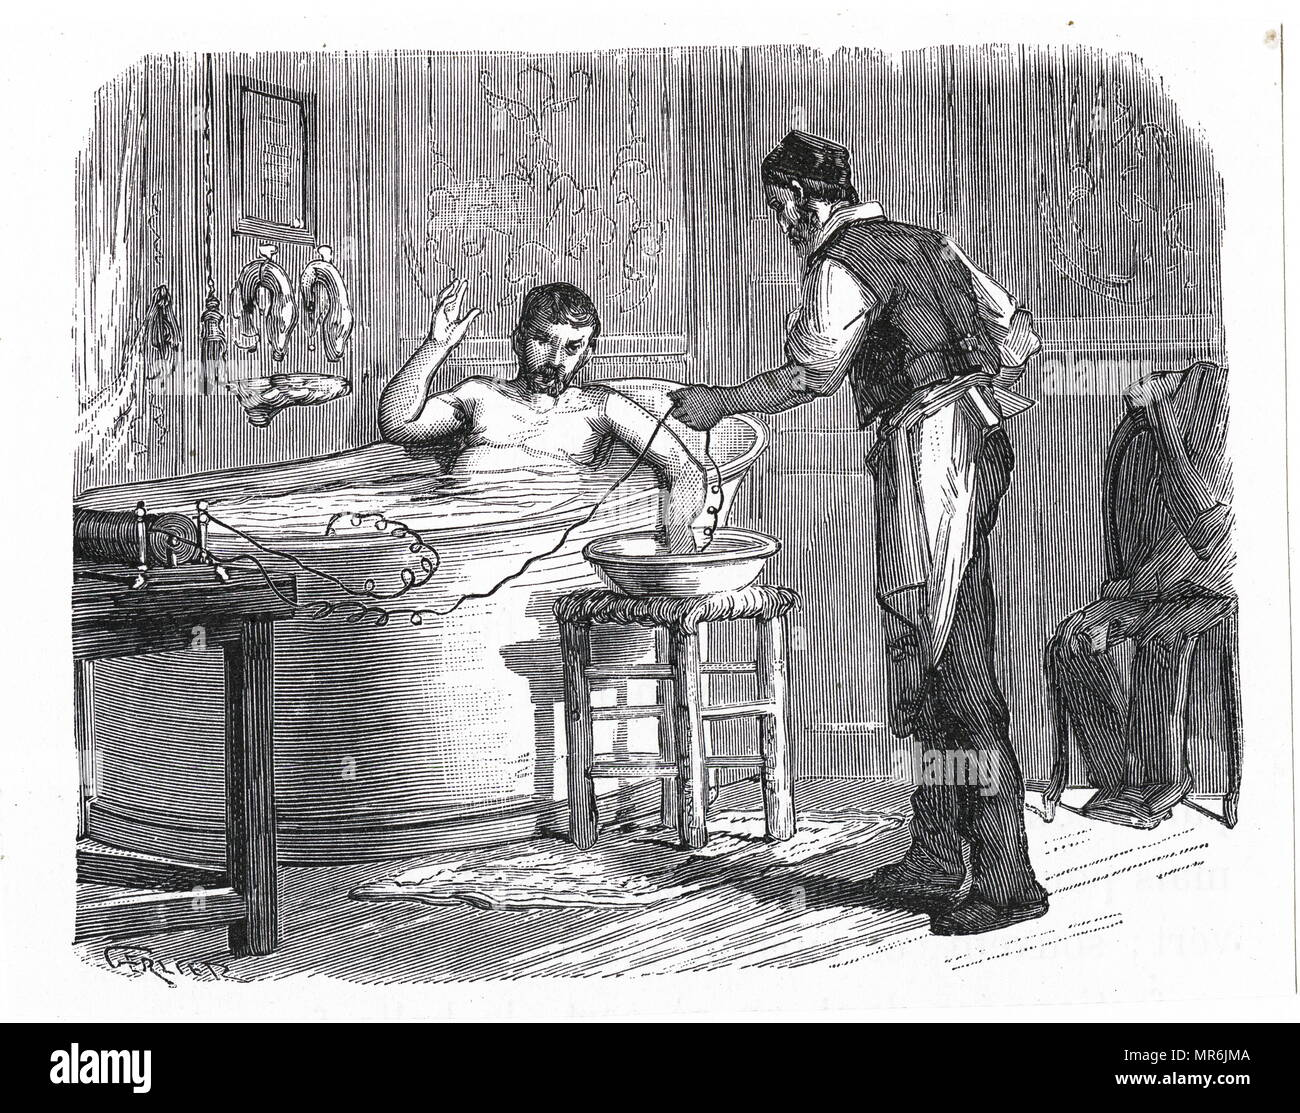 Engraving depicting a coil being used to give therapeutic shocks to a patient in a saline bath. Dated 19th century - Stock Image